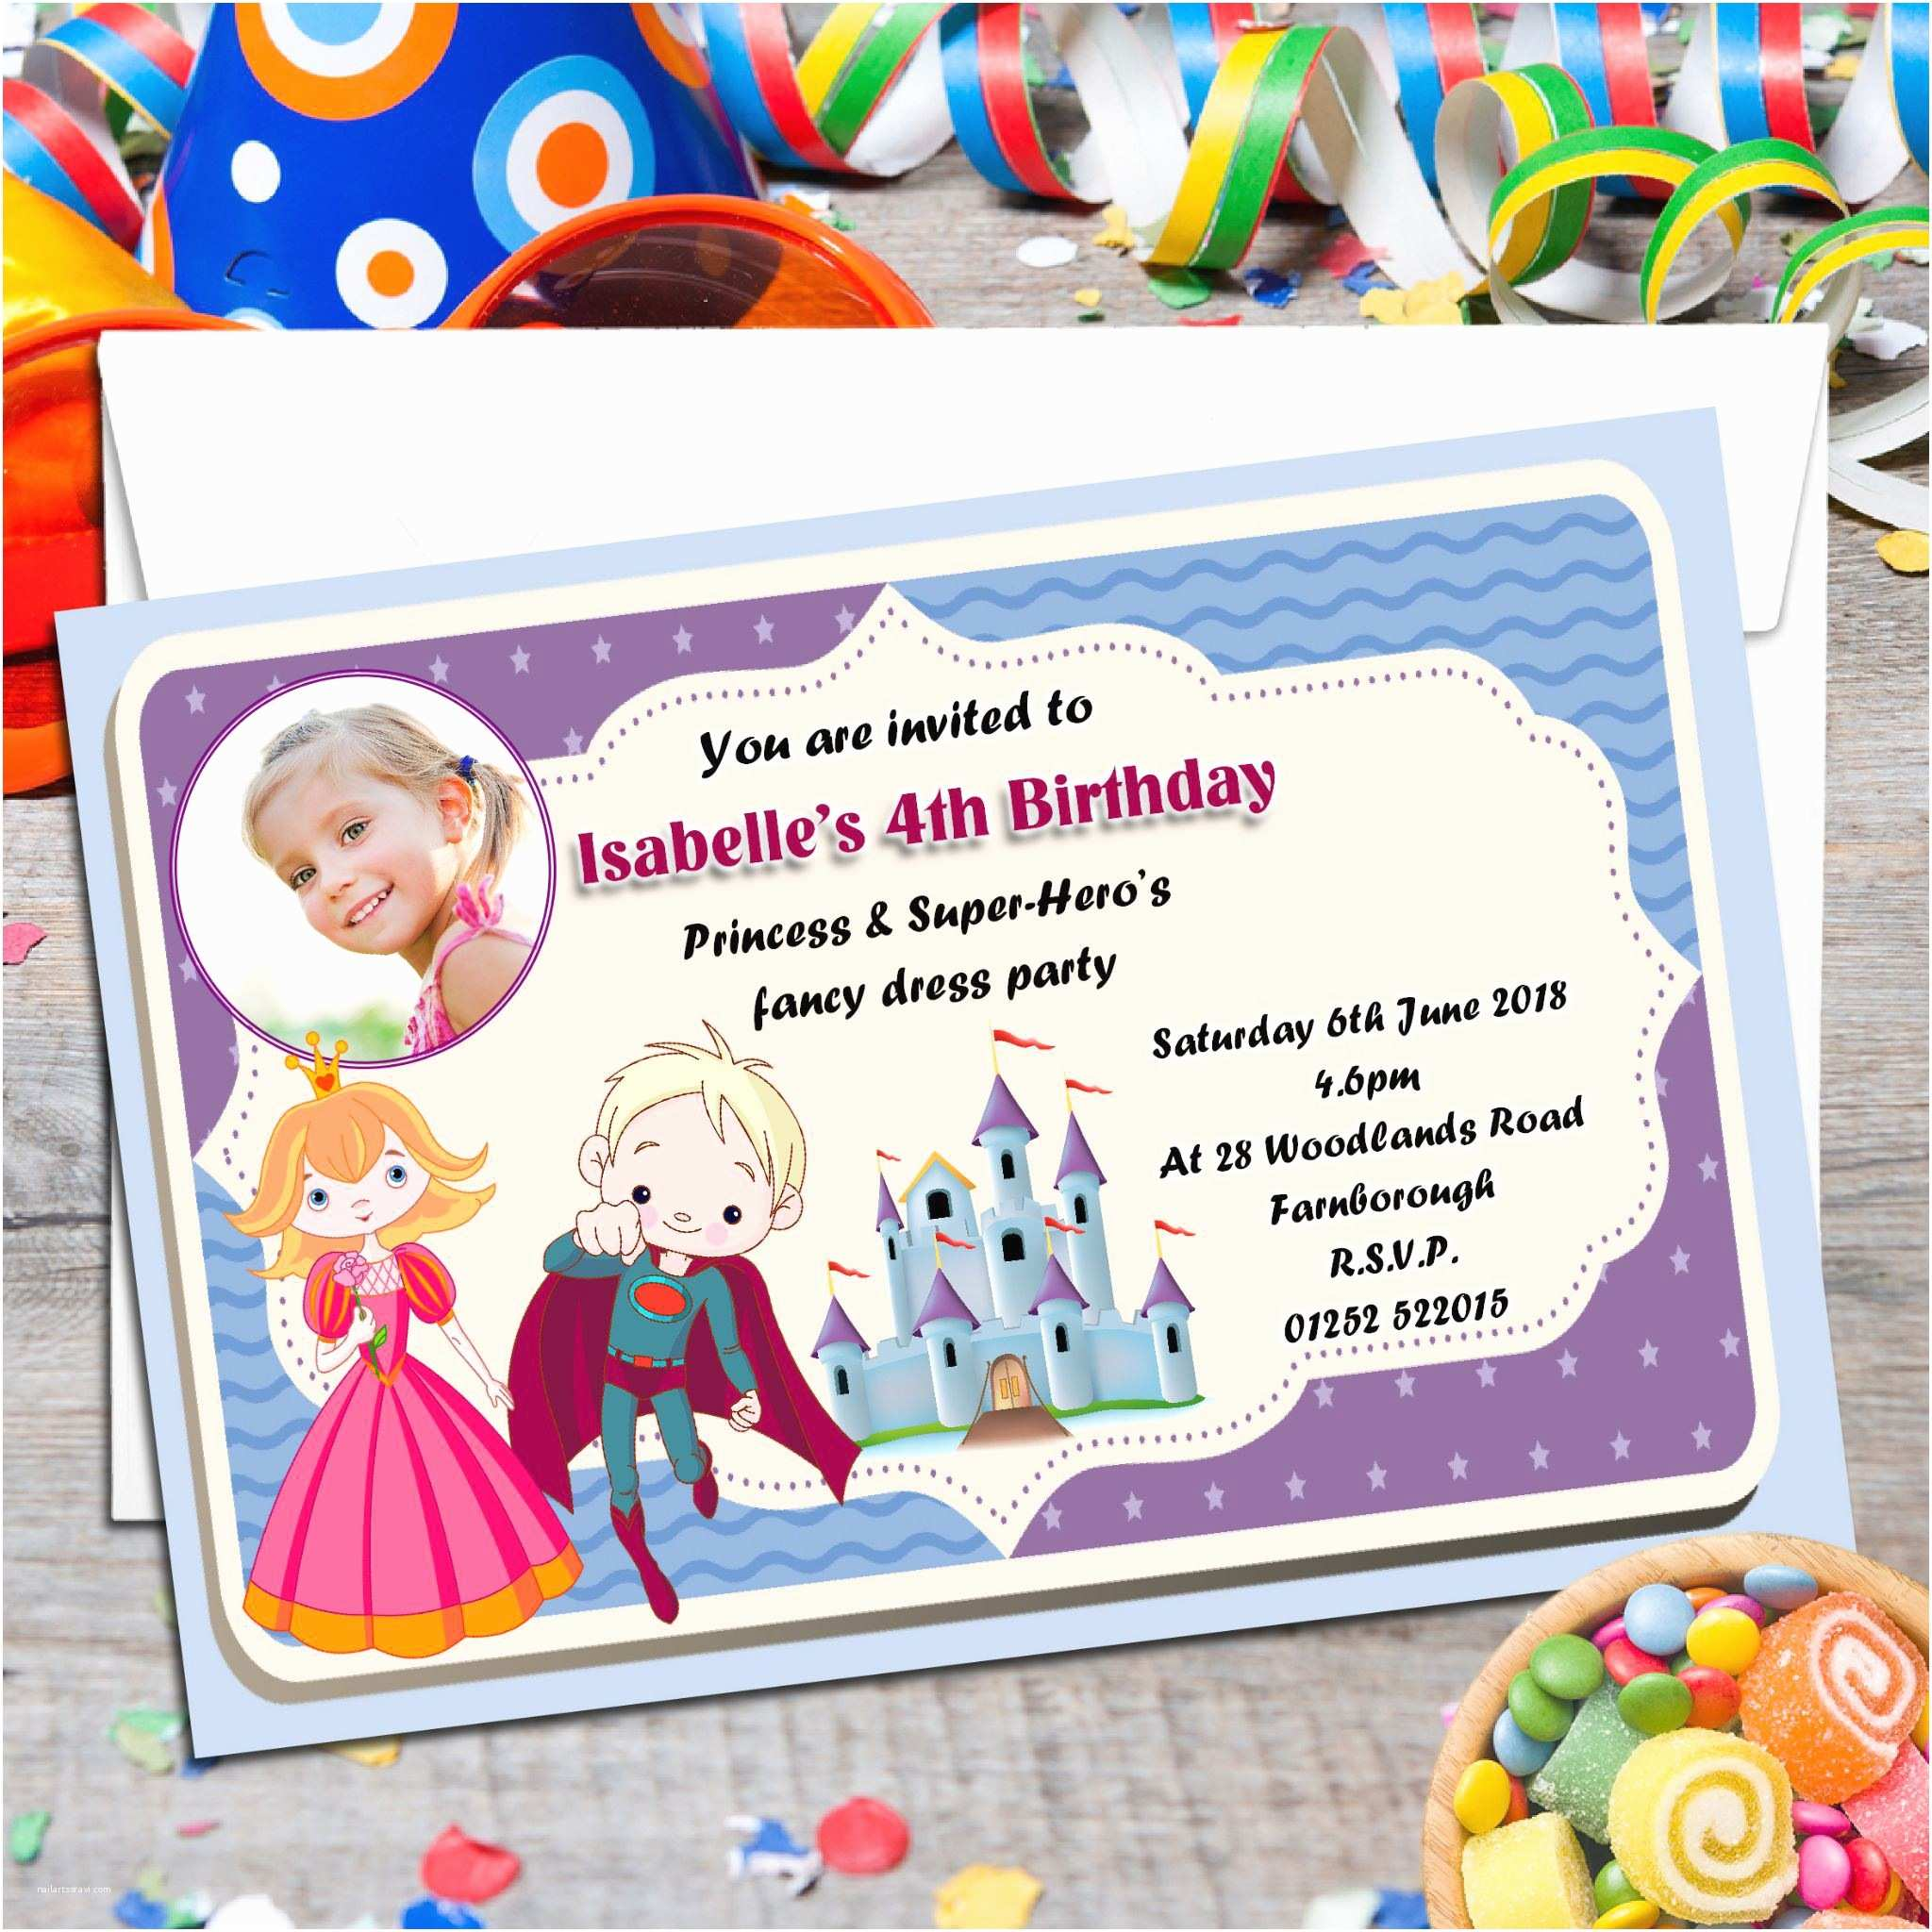 Birthday Invitation Cards Happy Birthday Invitation Cards Happy Birthday